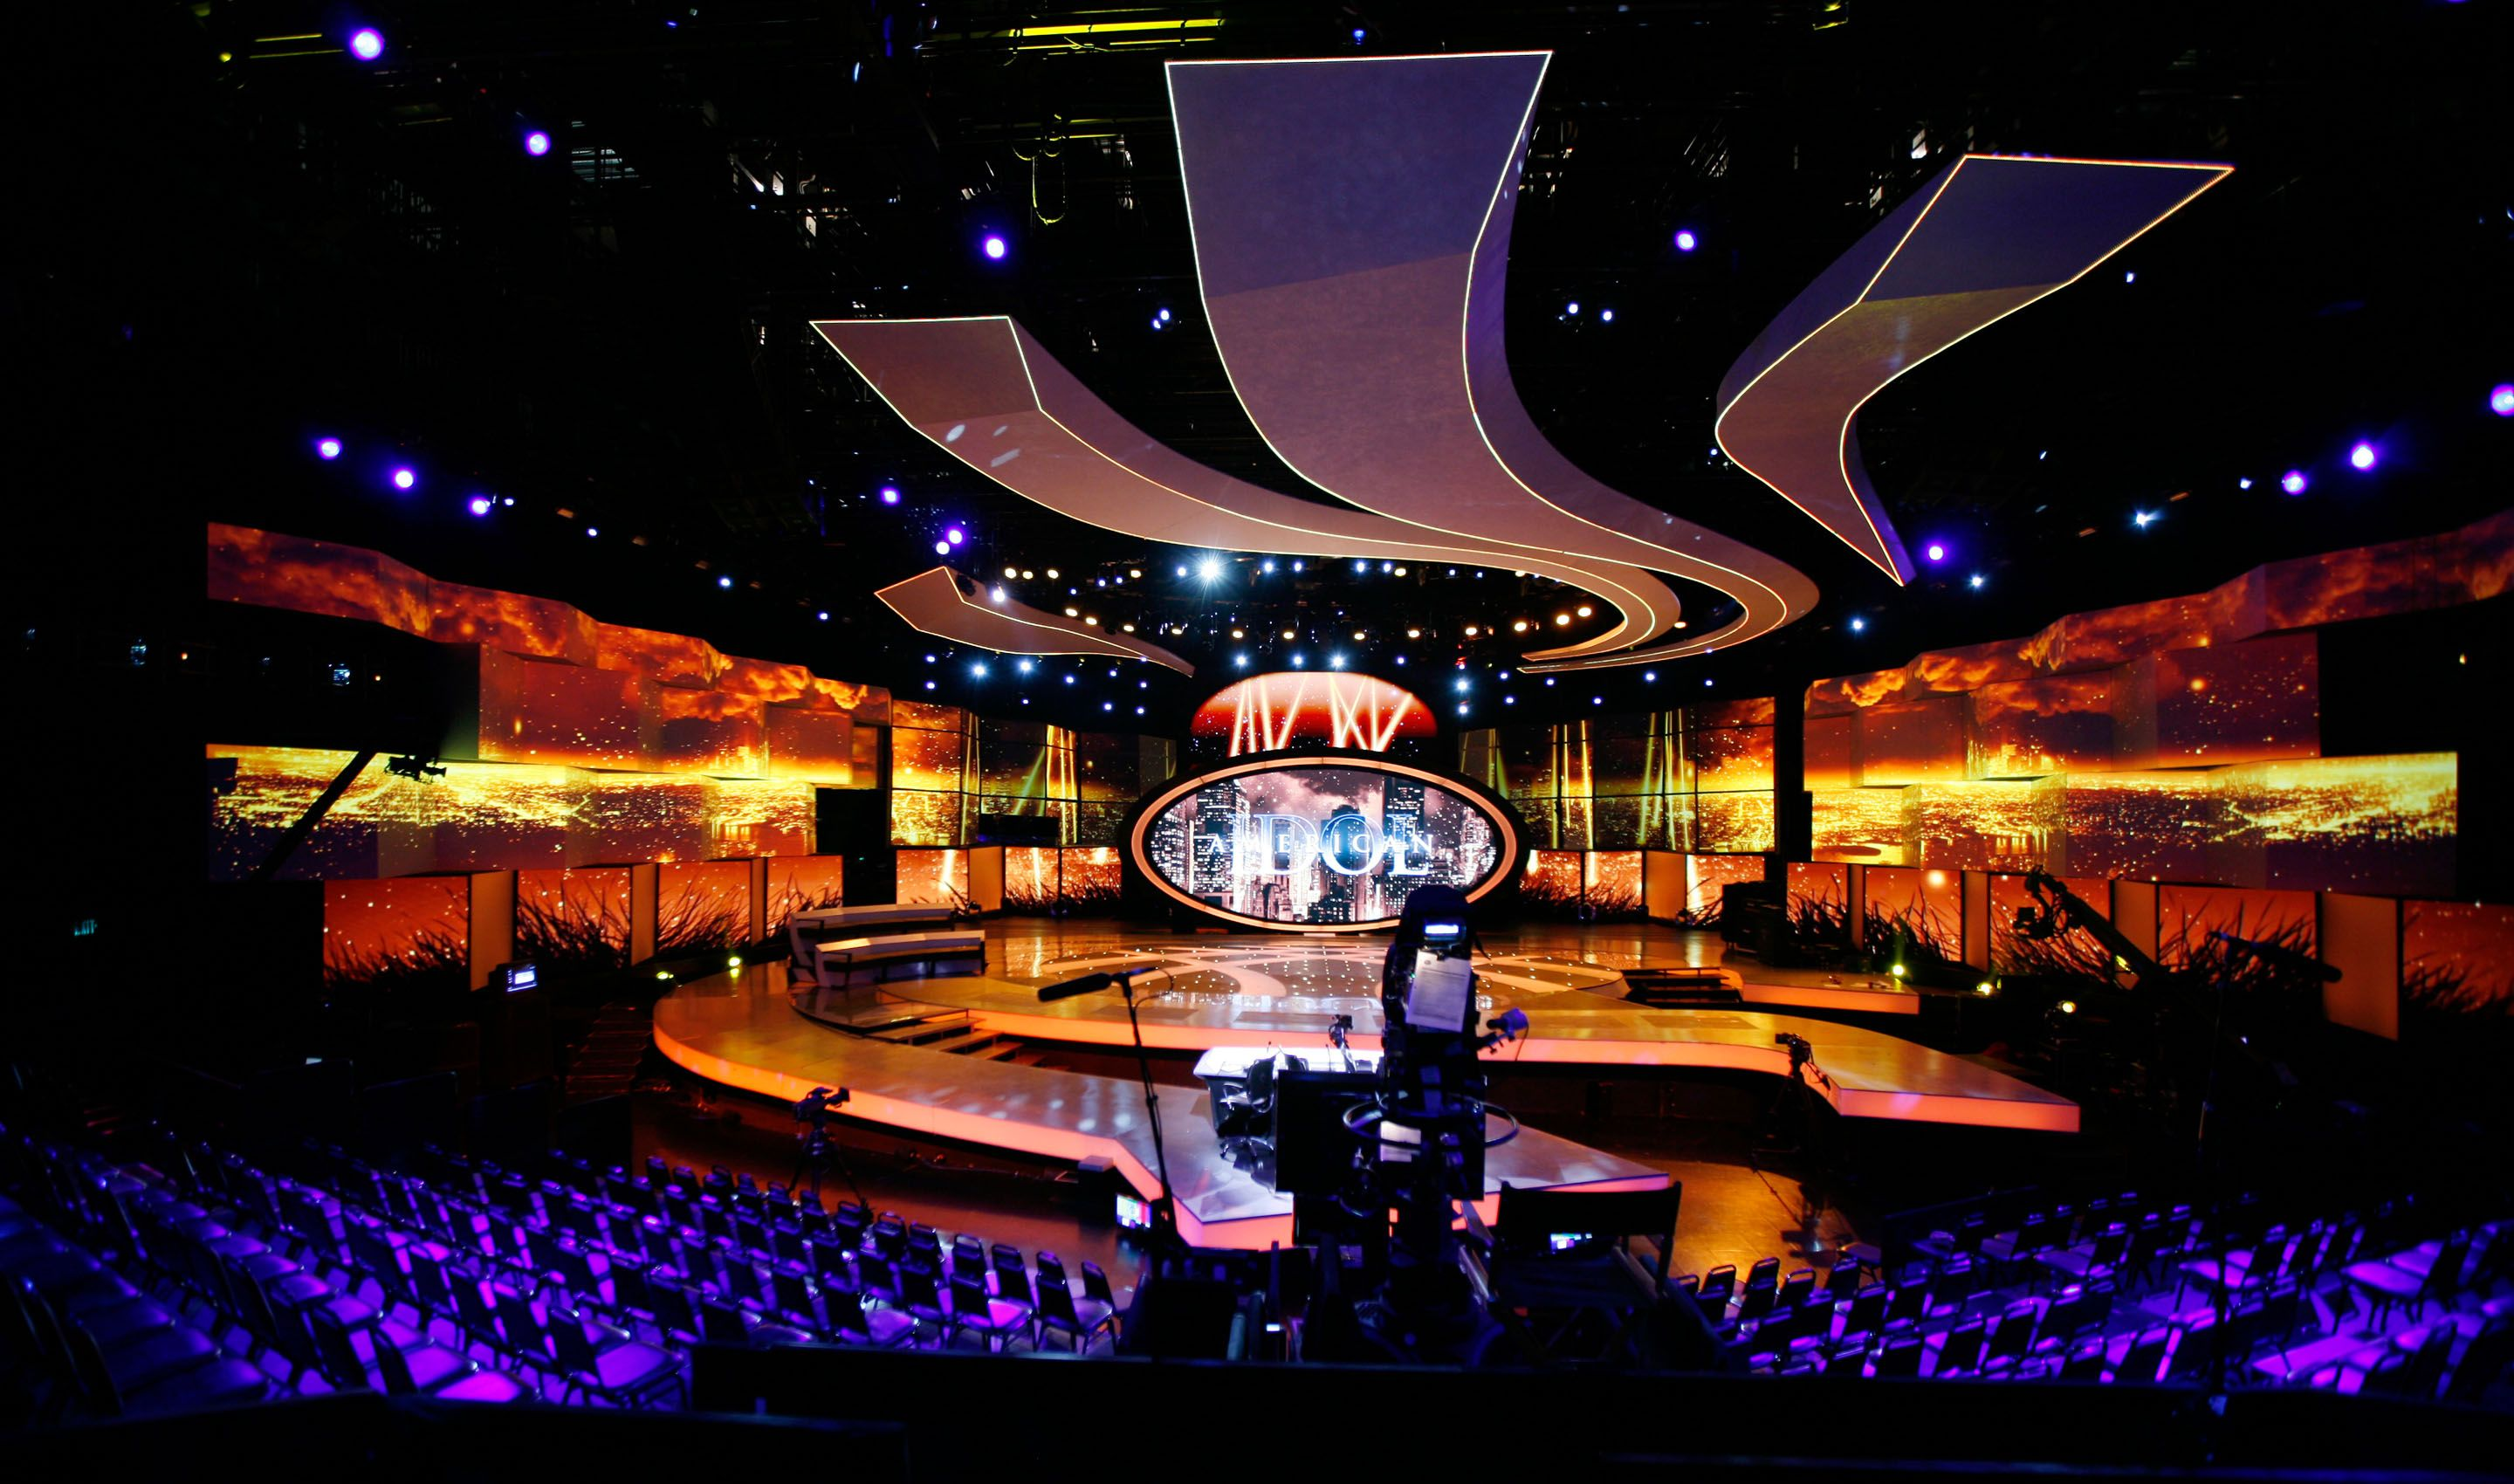 stage set design with large decorative shapes and lighting - Concert Stage Design Ideas